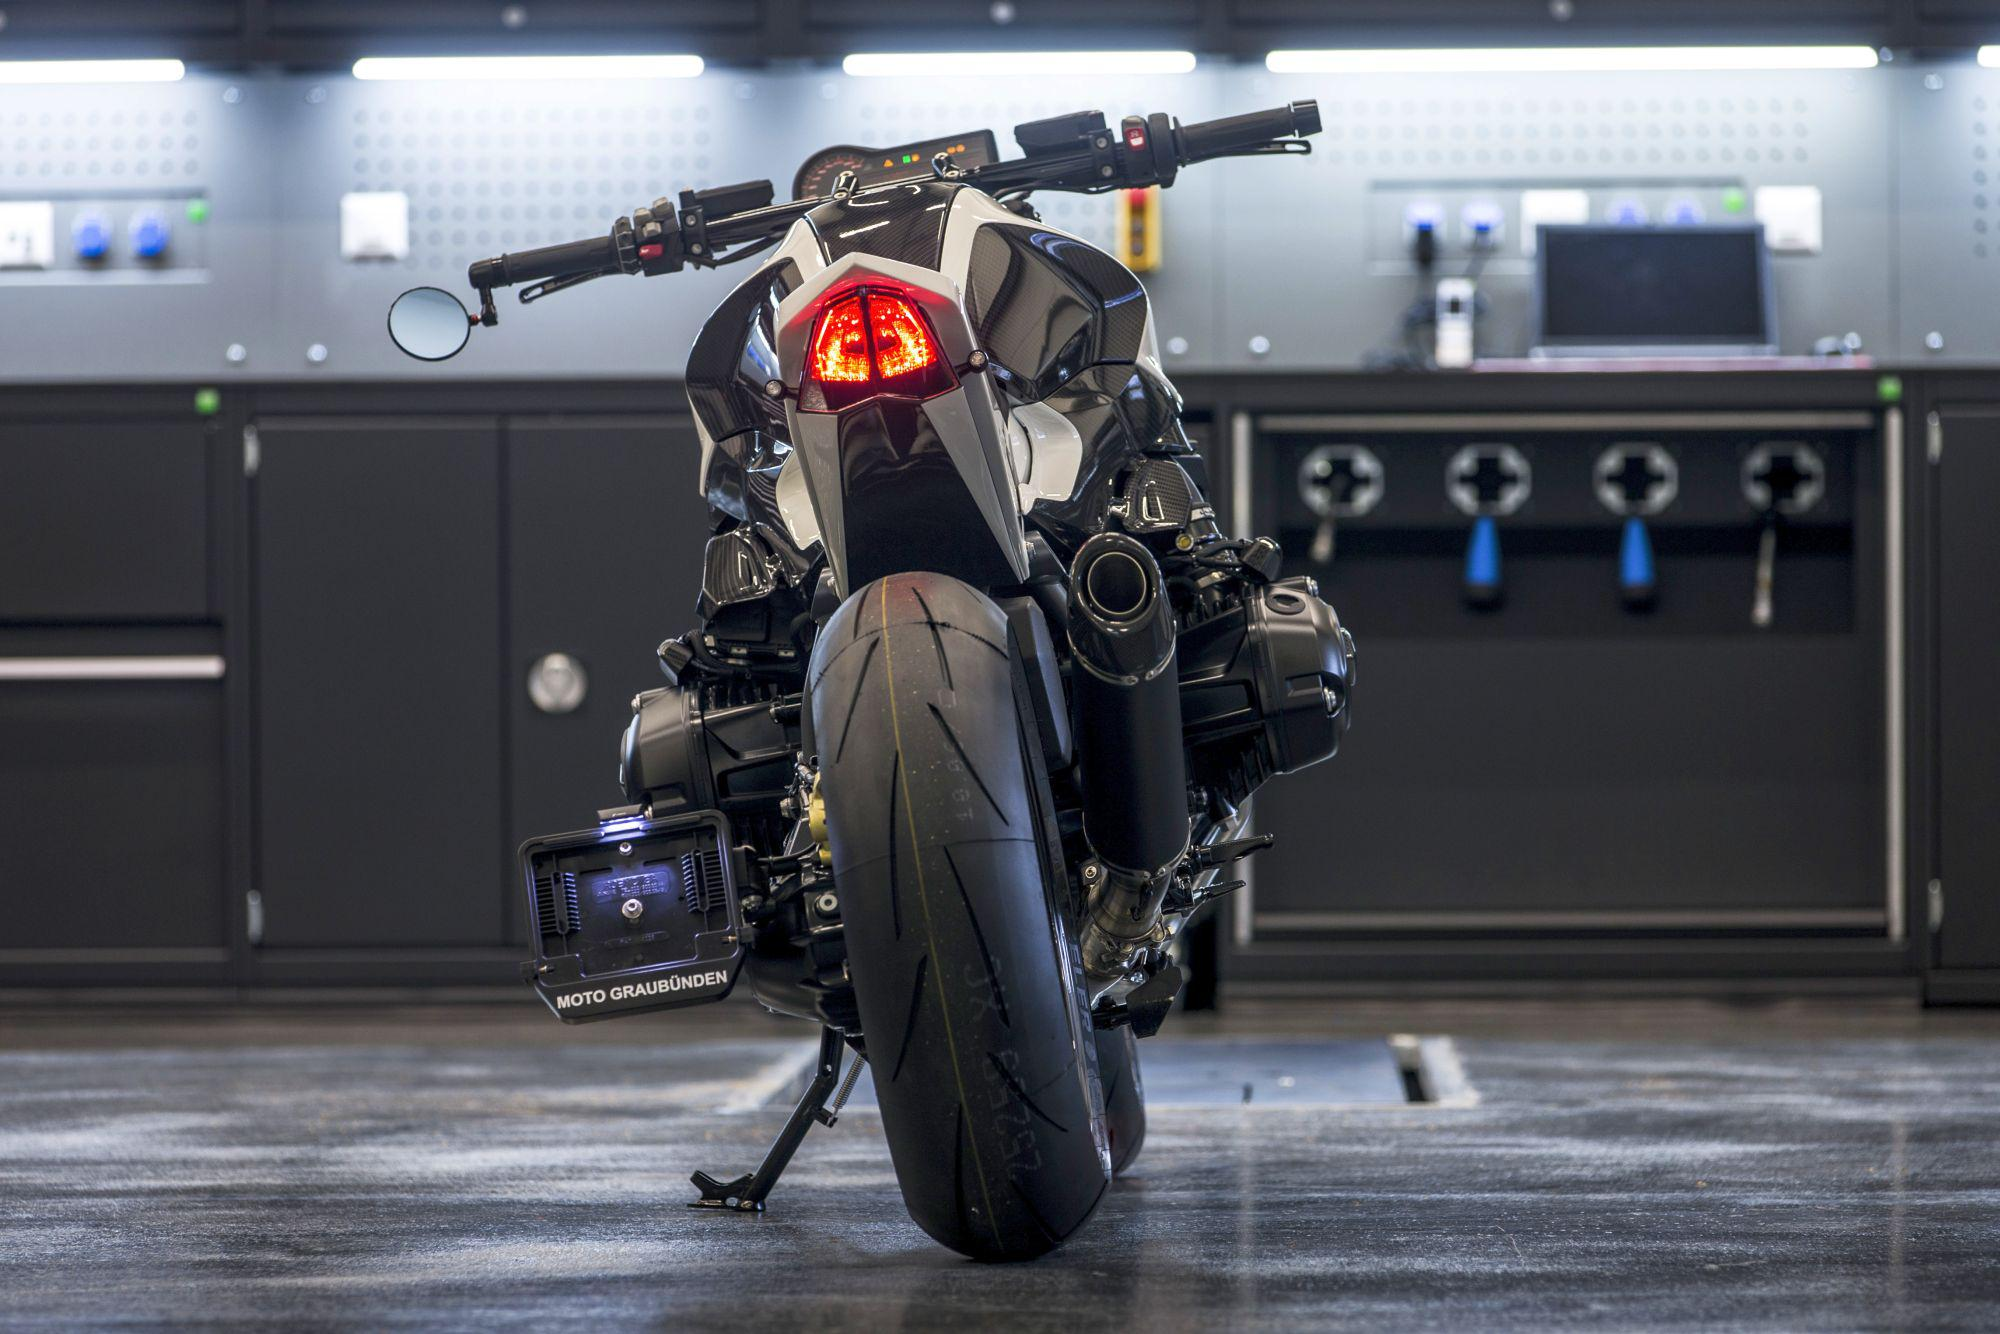 bmw-r1200r-streetfighter--8 Extraordinary Bmw R 1200 R Street Fighter Cars Trend